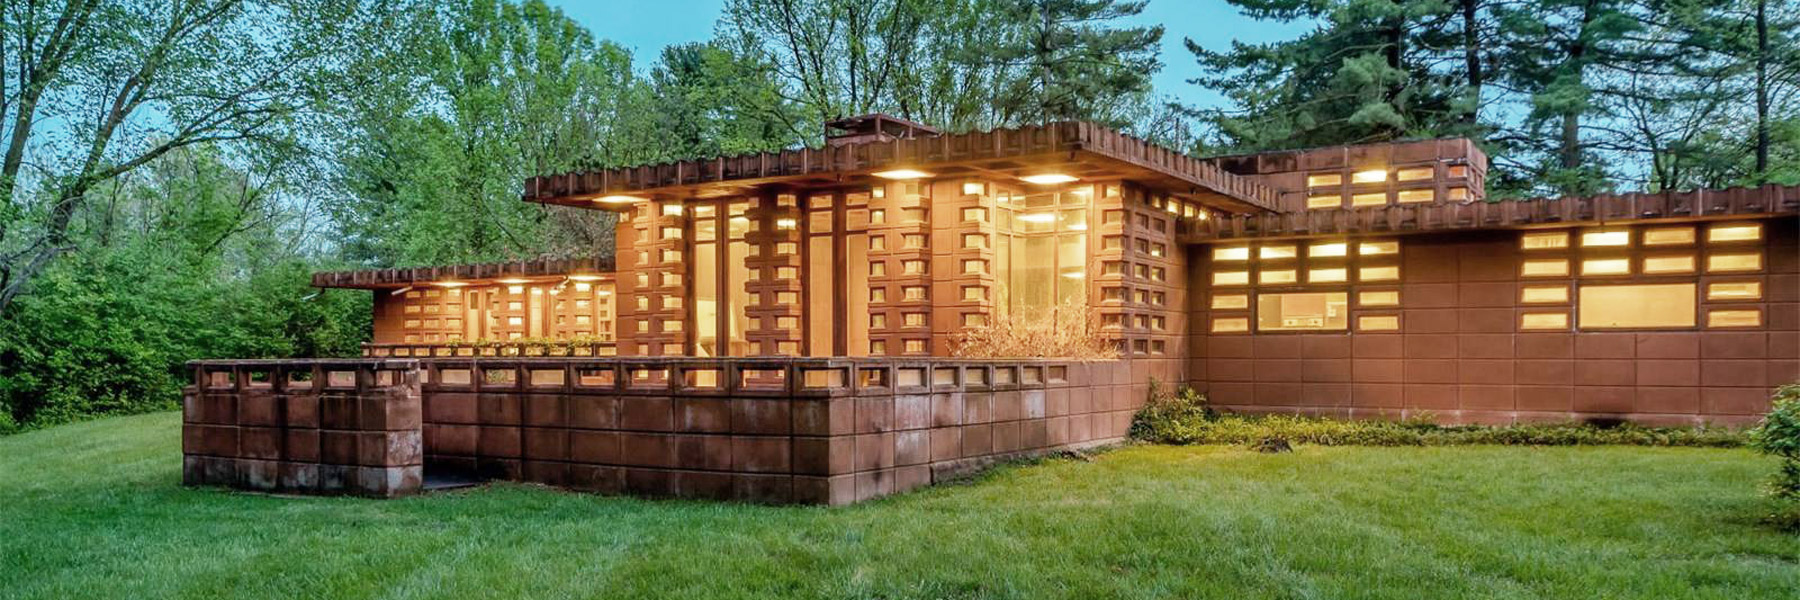 Frank Lloyd Wright Frank Lloyd Wright S Pappas House Goes On Sale Made Entirely